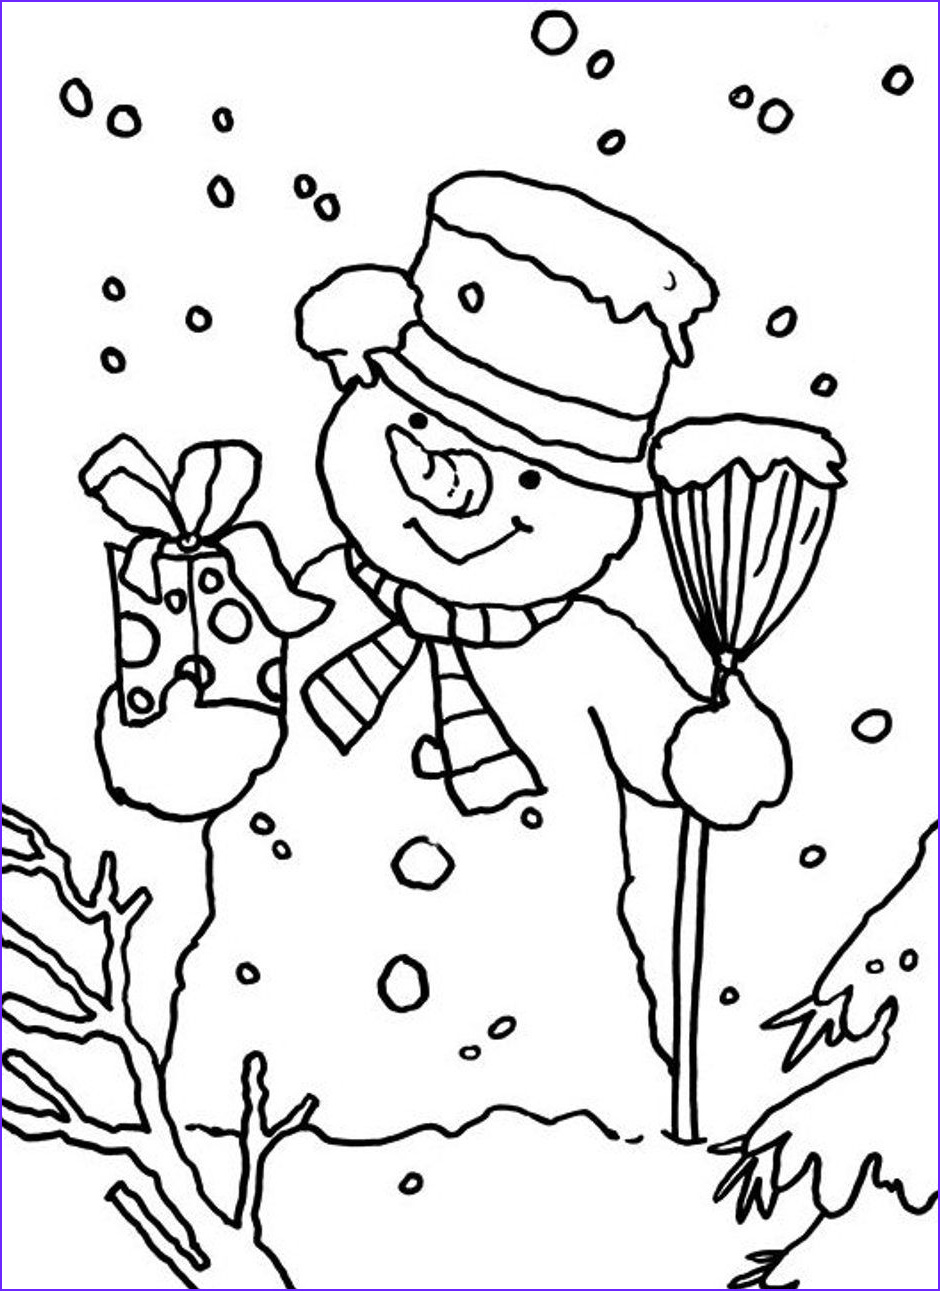 printable winter scene coloring pages